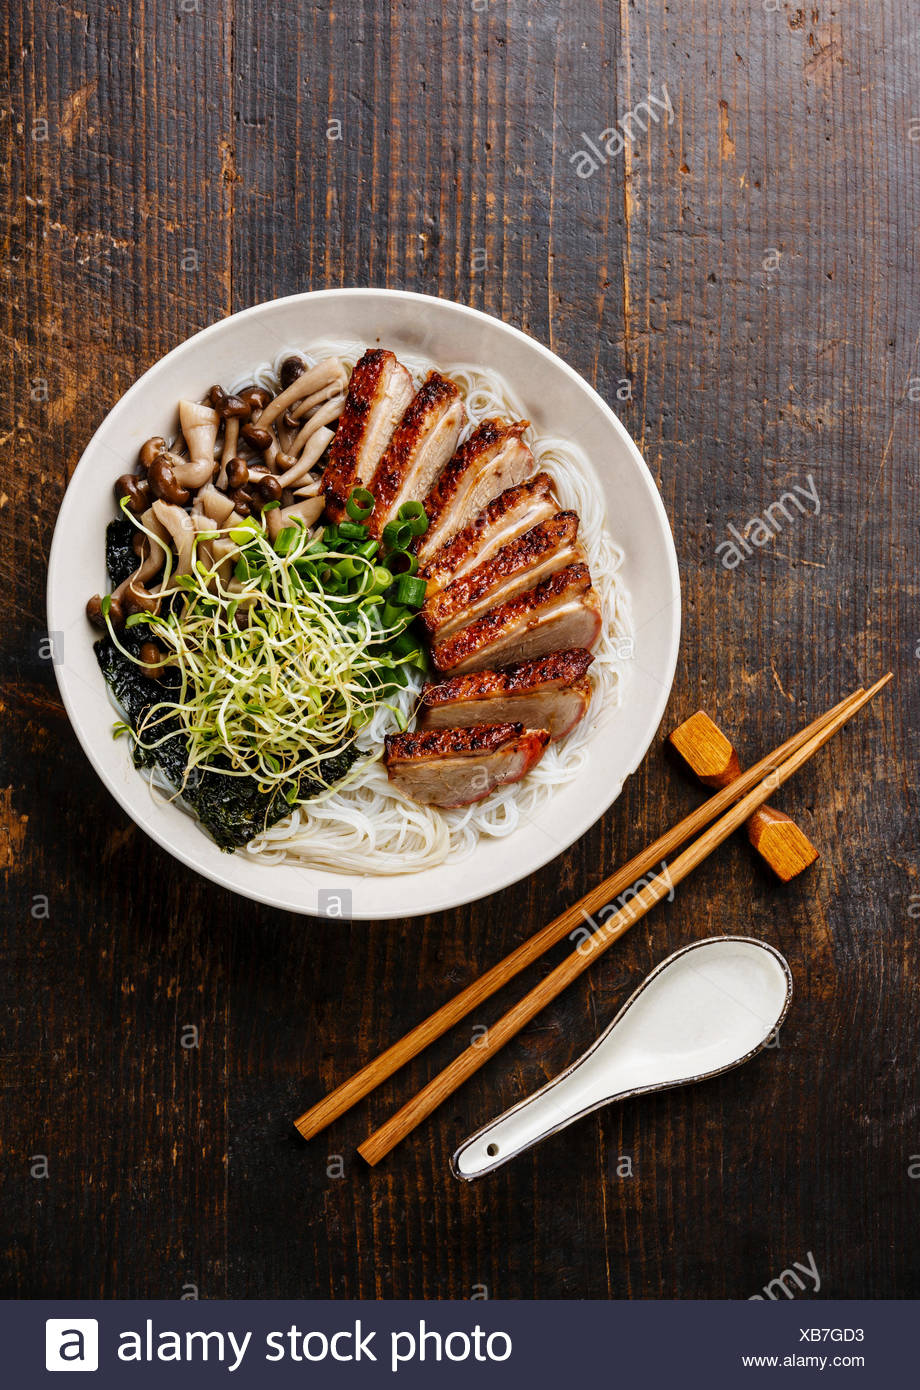 Rice noodles bowl with Peking Duck and mushrooms on wooden background - Stock Image